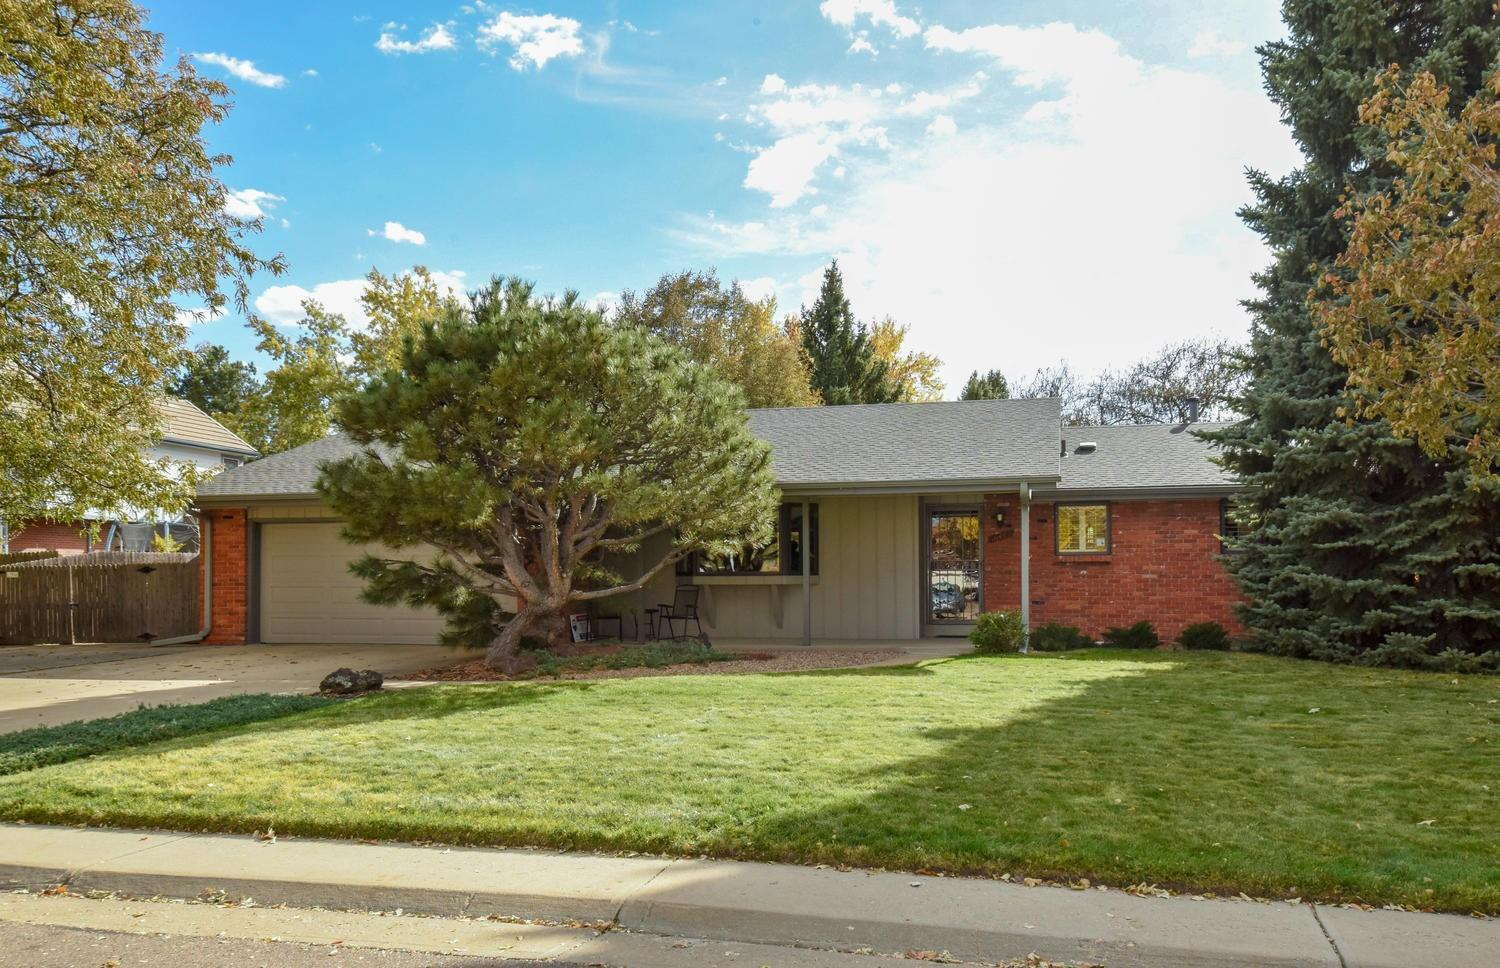 10482 W 75th Ave - Eckland - Sellers2.jpeg